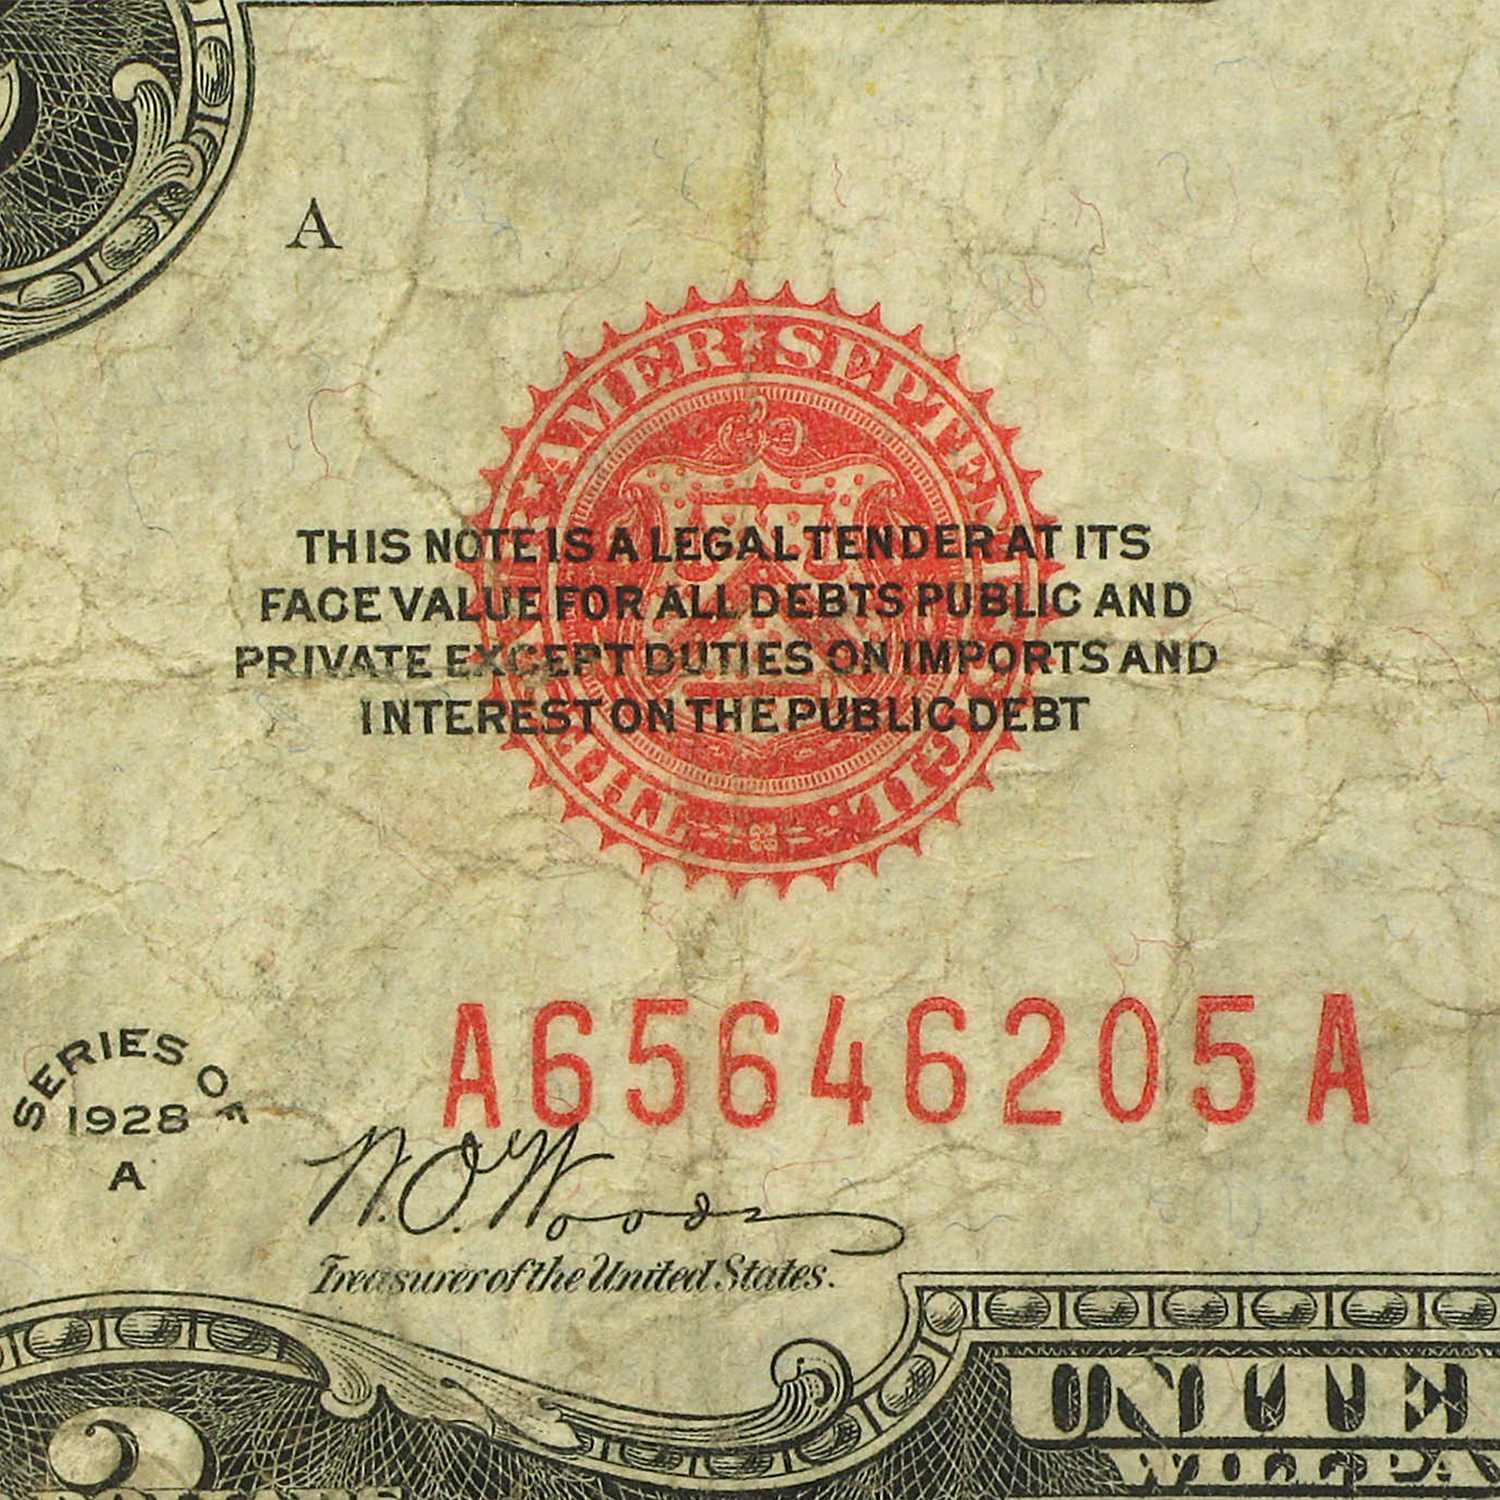 1928-A $2.00 USN (Red Seal) (Very Good)